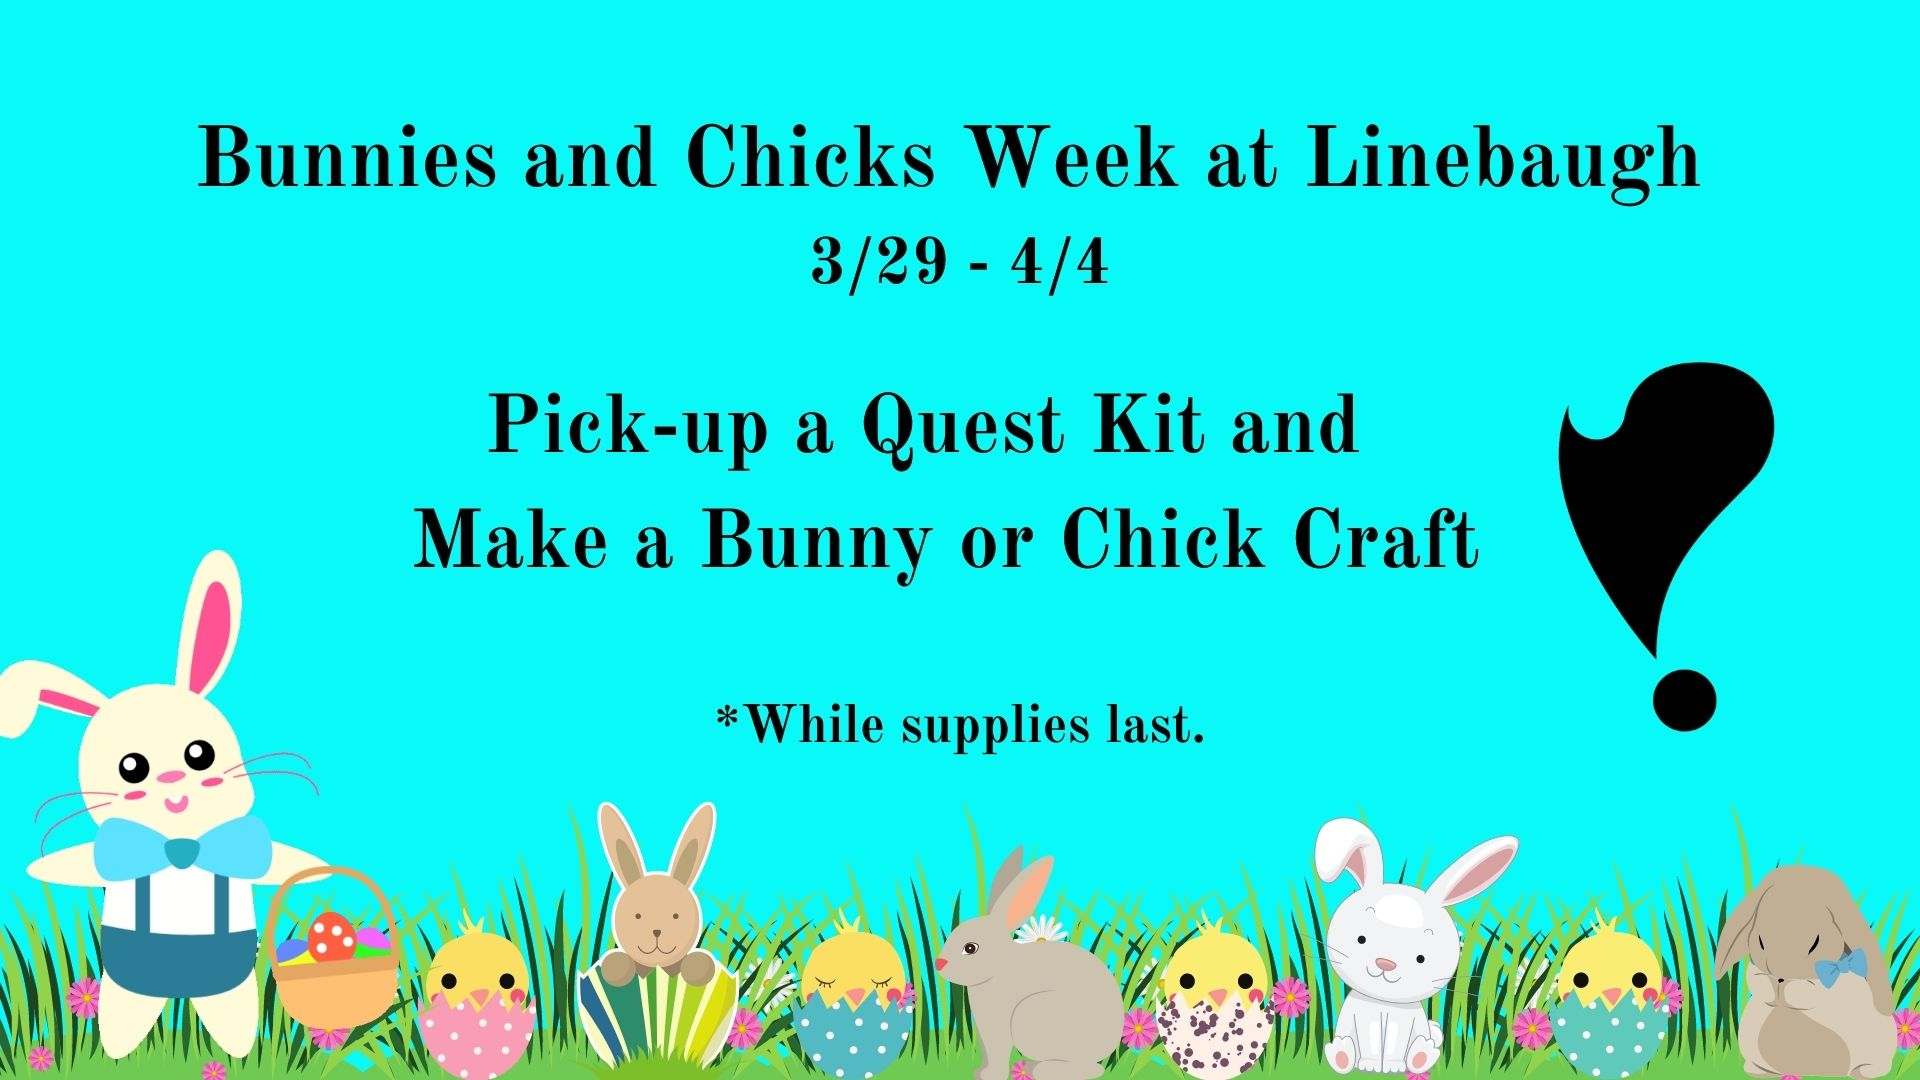 Bunnies and Chicks Week at Linebaugh